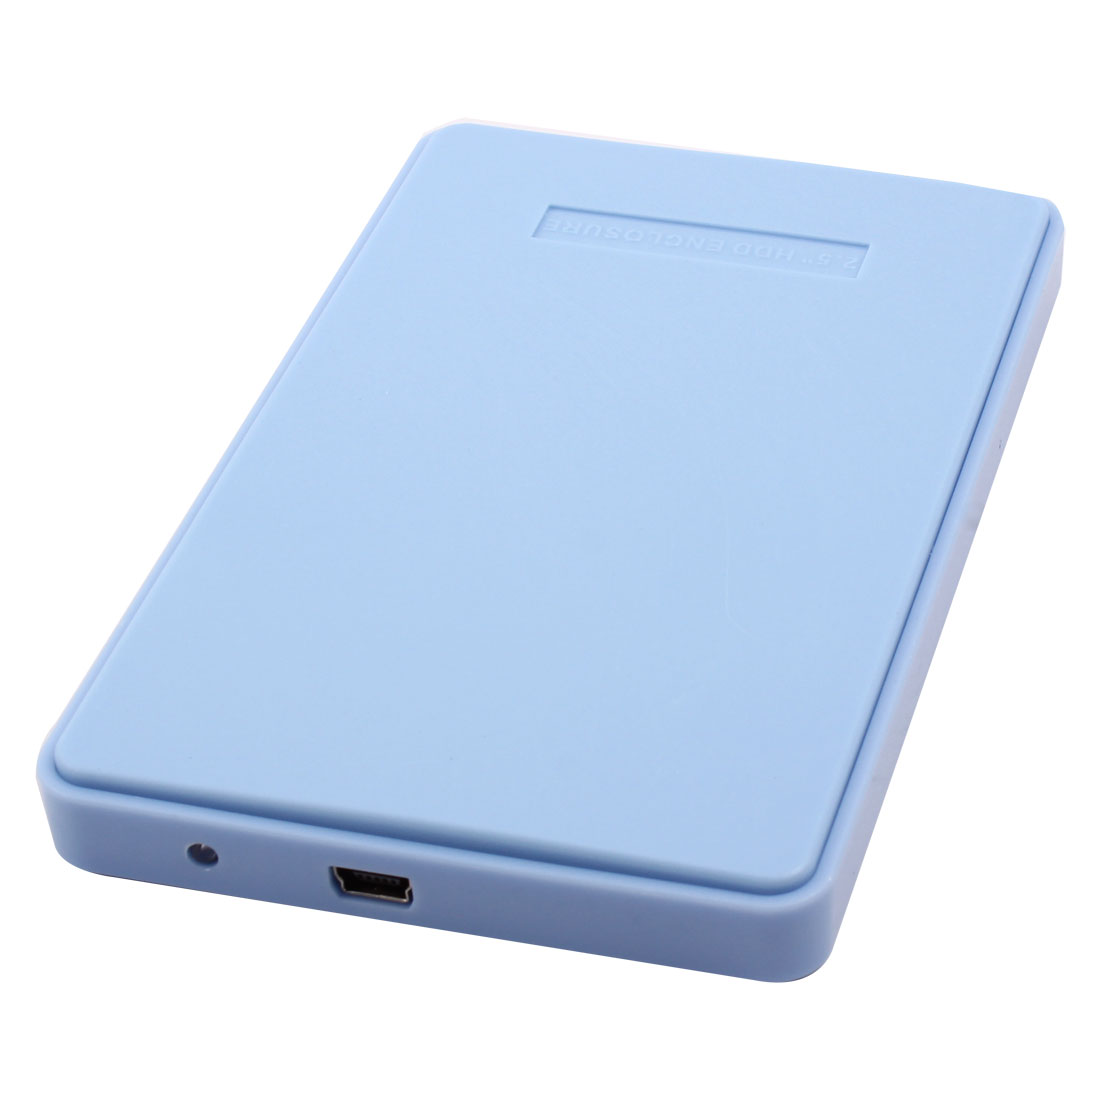 Notebook Portable USB 2.0 Hard Drive Disk Plastic Enclosure External 2.5 Inch Sata HDD Case Light Blue